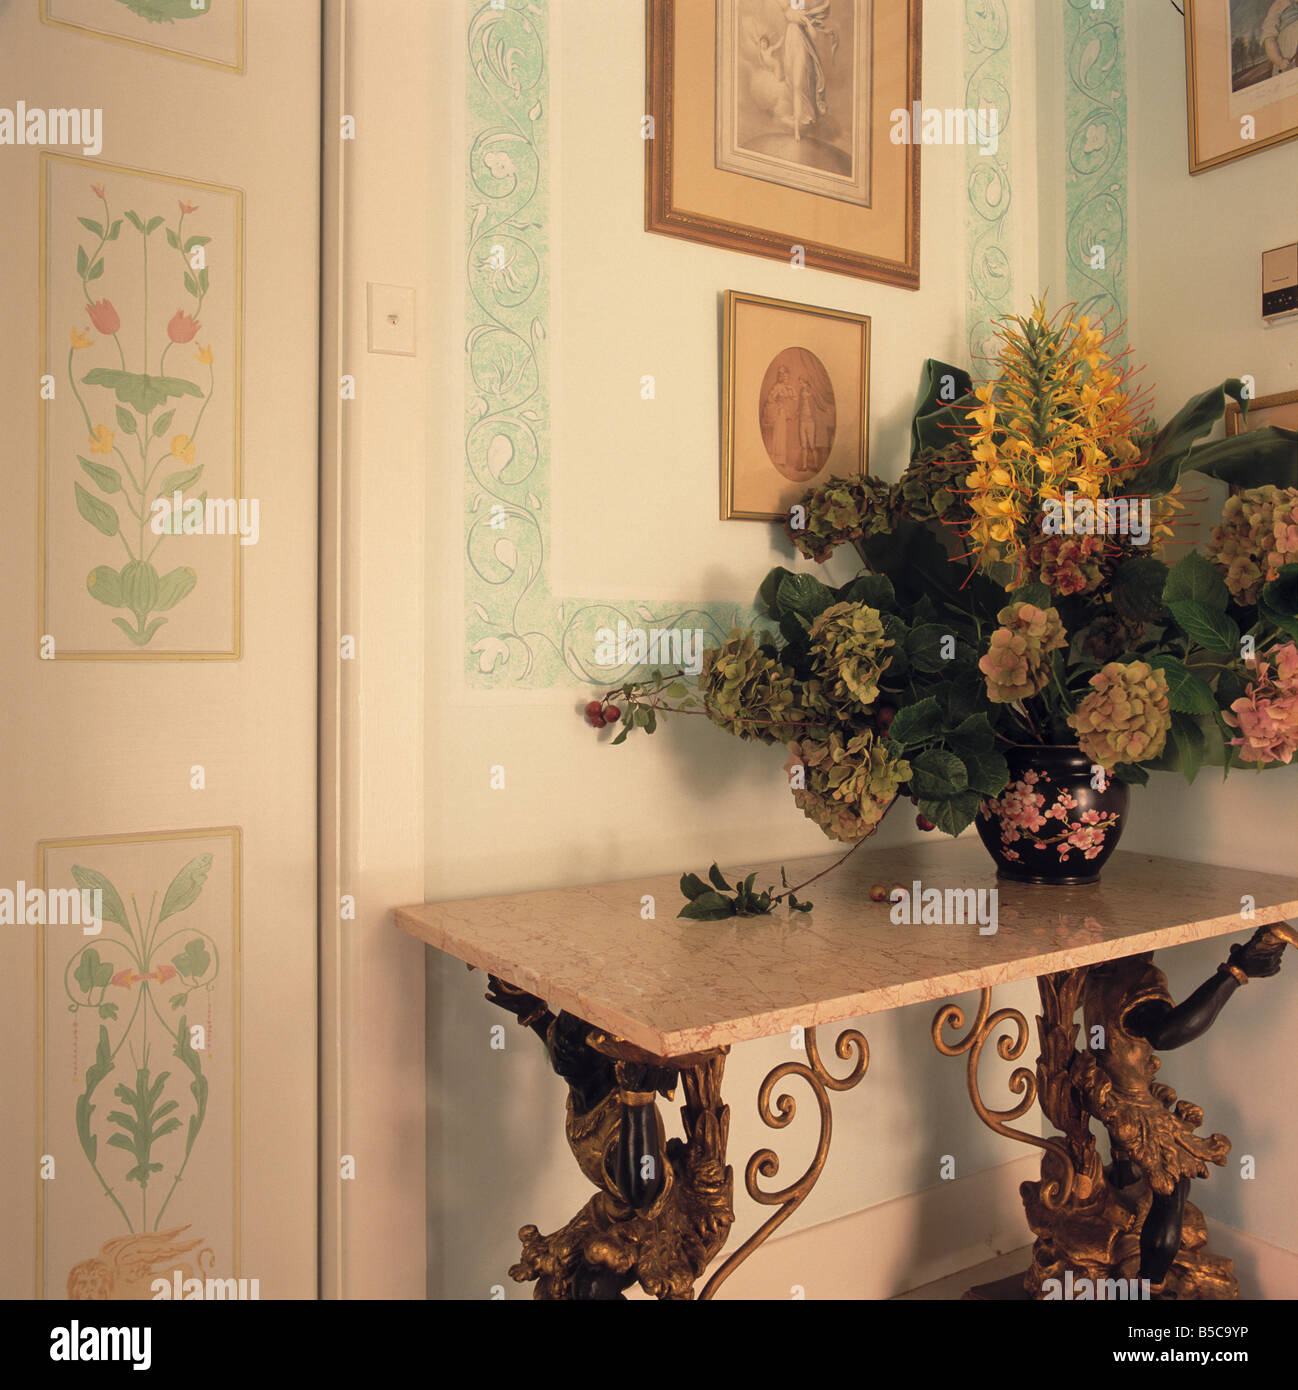 Flower Arrangement On Marble Topped Ornate Gilt Table In Corner Of Hall  With Painted Floral Decorations